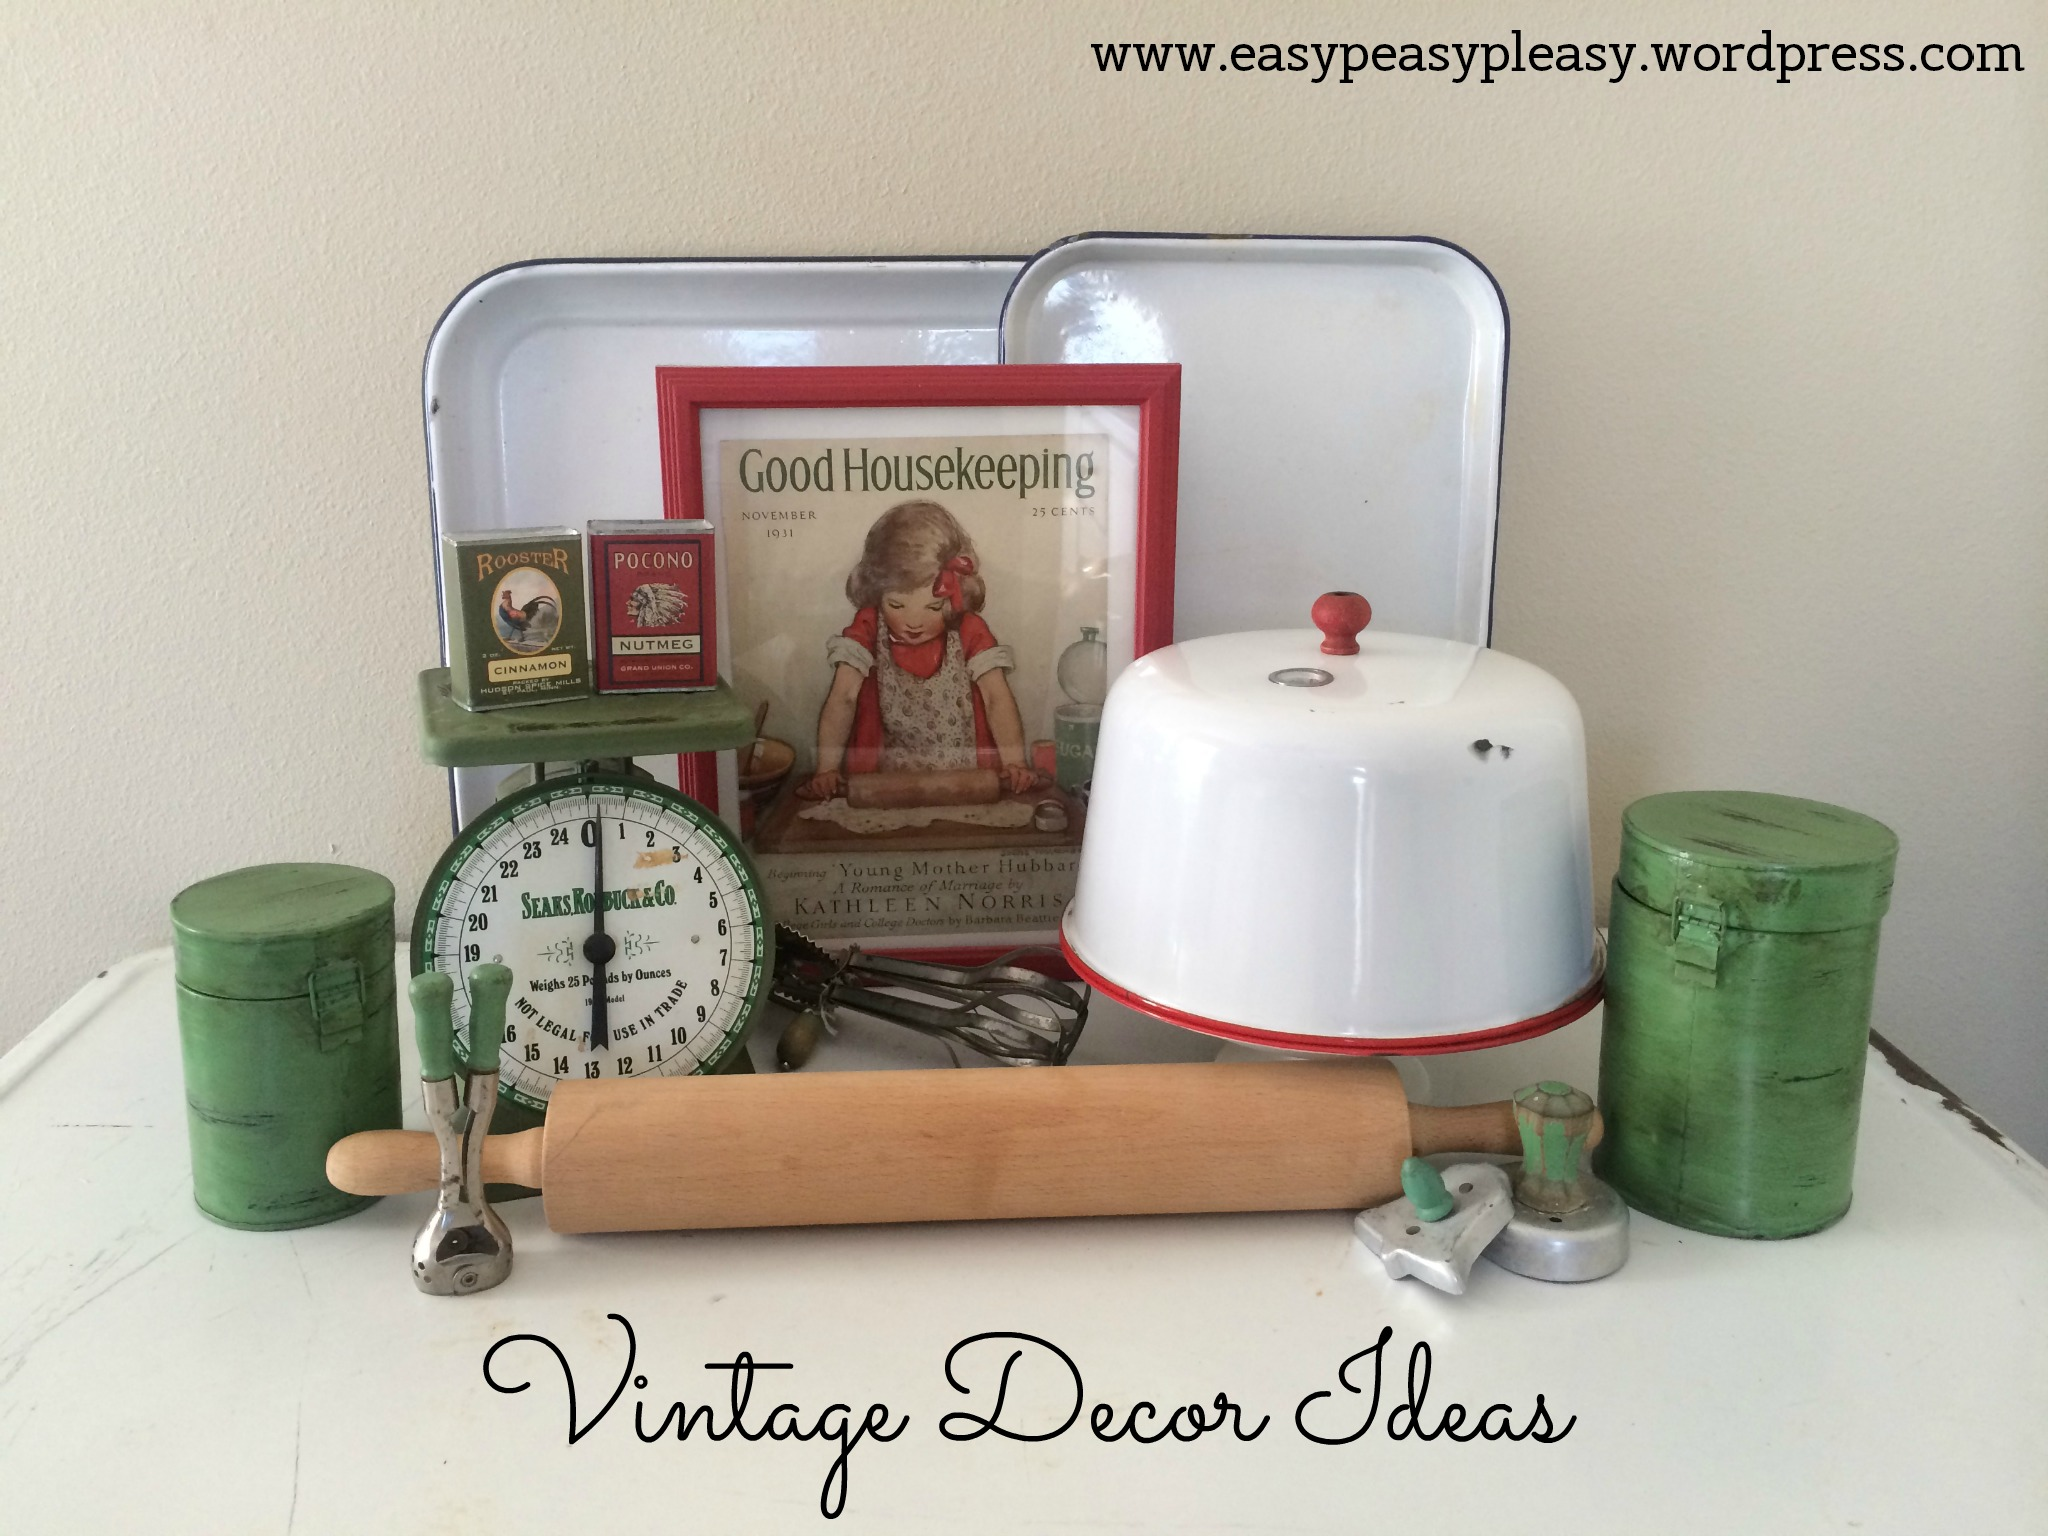 Vintage Decor Ideas for the kitchen using enamelware at https://easypeasypleasy.com